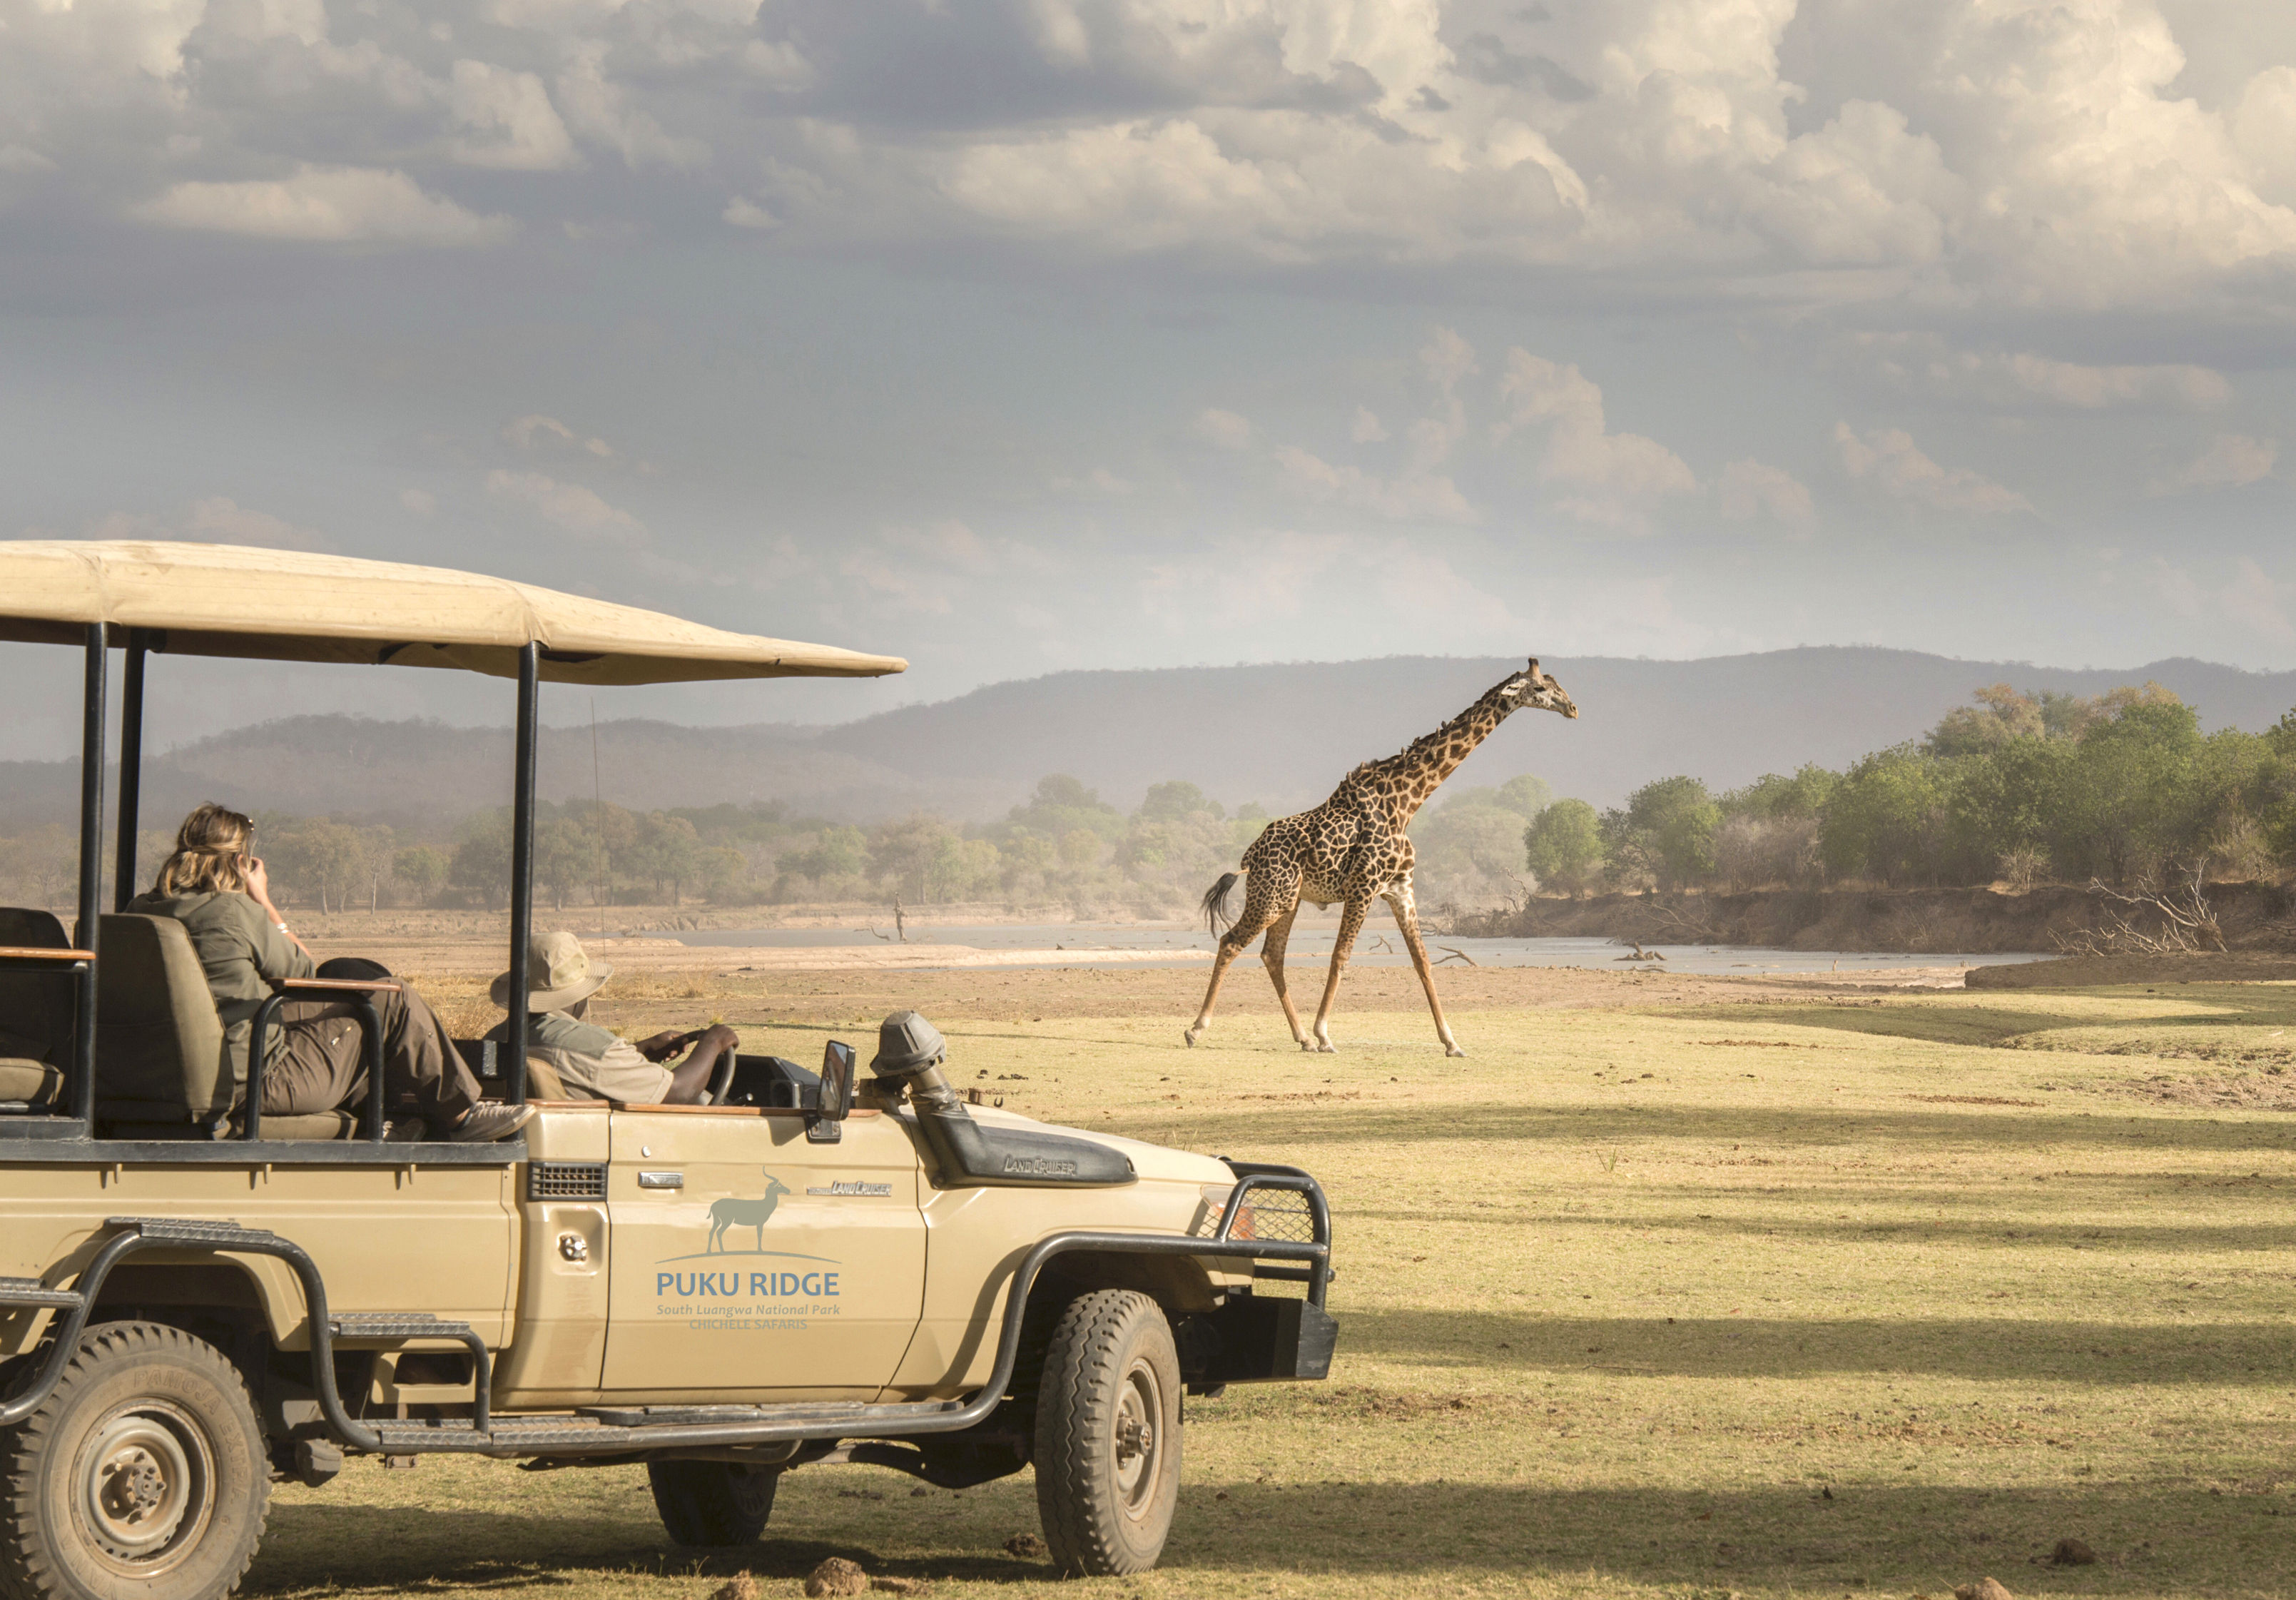 Phinda Private Game Reserve, South Africa: An immersive world of luxury and adventure, with conservation at its heart